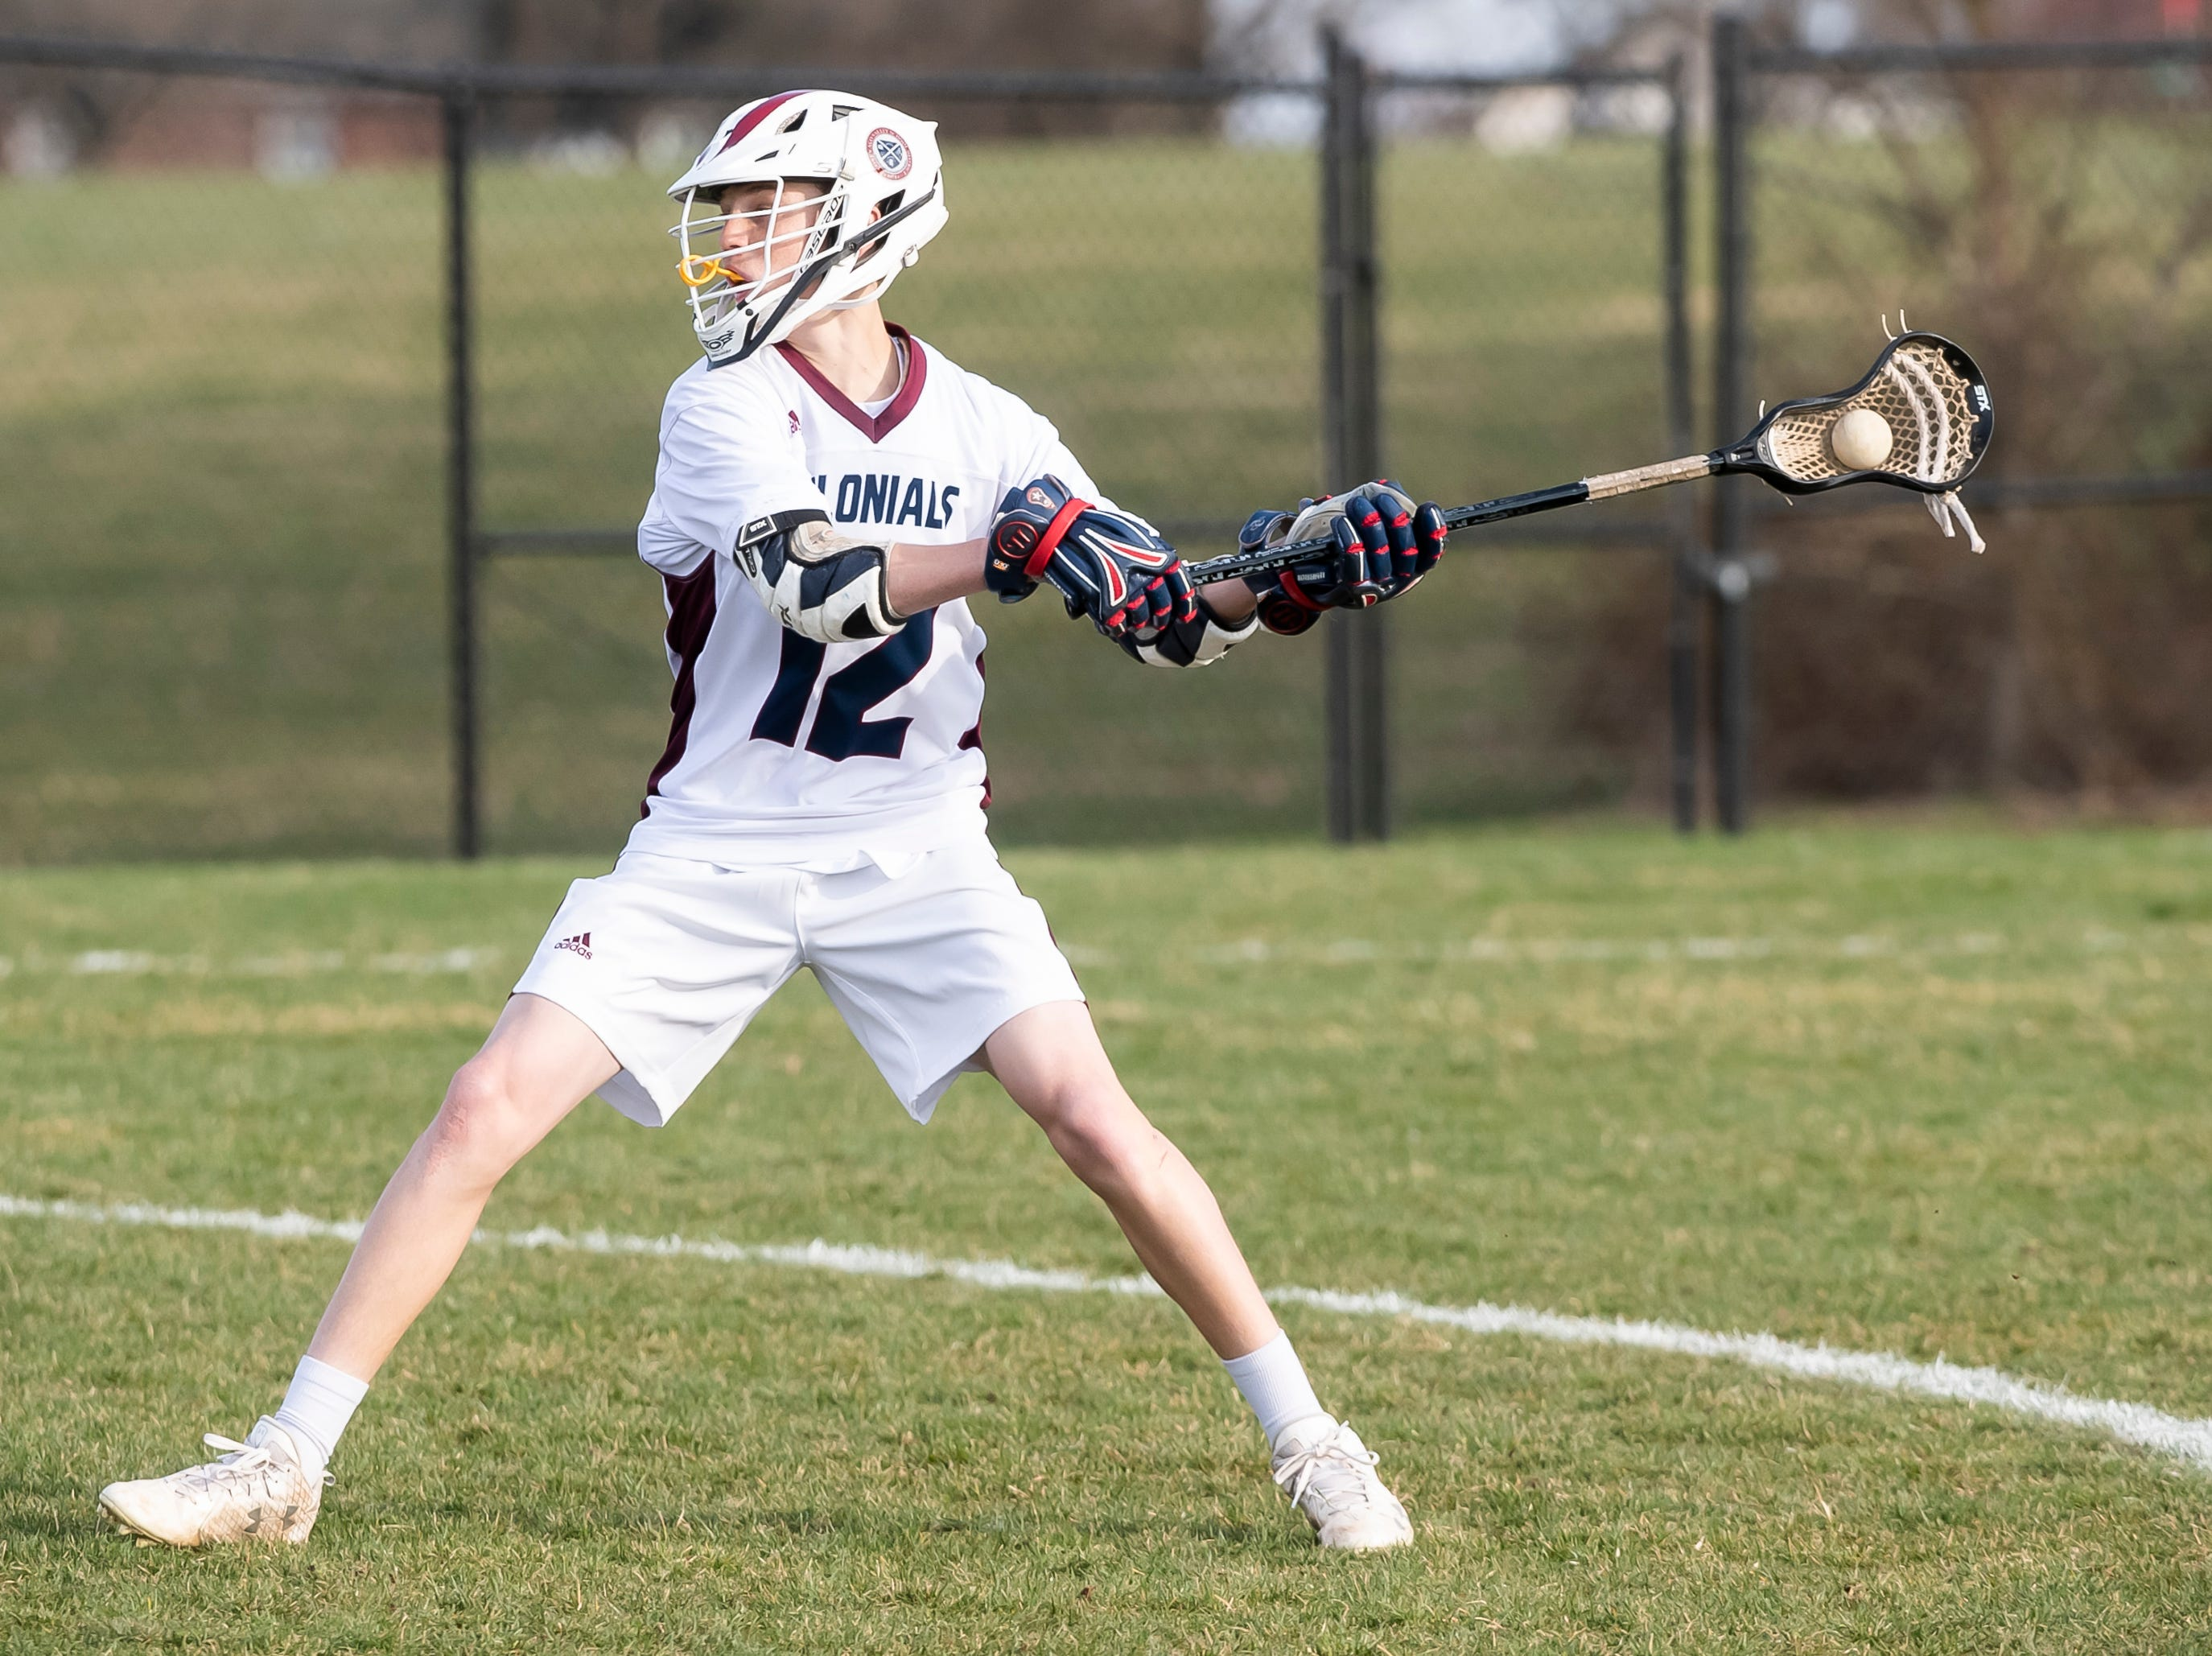 New Oxford's Brandon Carver takes a shot on goal during a YAIAA boys' lacrosse game against York Catholic on Thursday, April 4, 2019. Carver had two goals as York Catholic won 14-8.